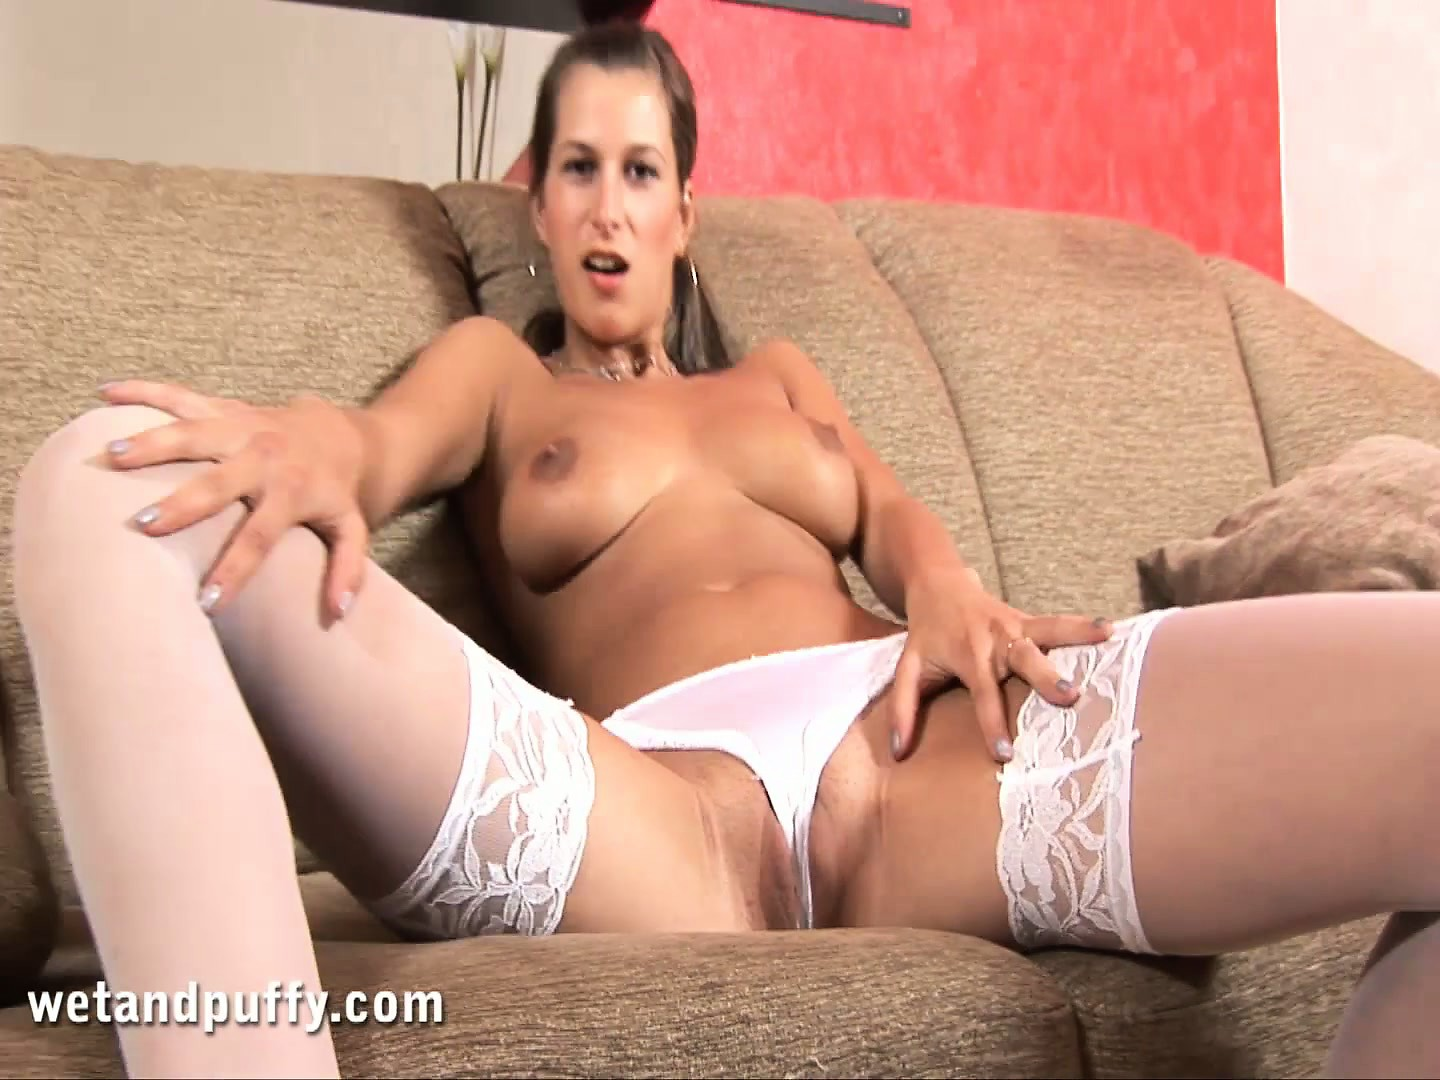 Porno Video of Lusty Lora Puts On A Hot Solo Show Wearing Her Sexy Thigh High Stockings